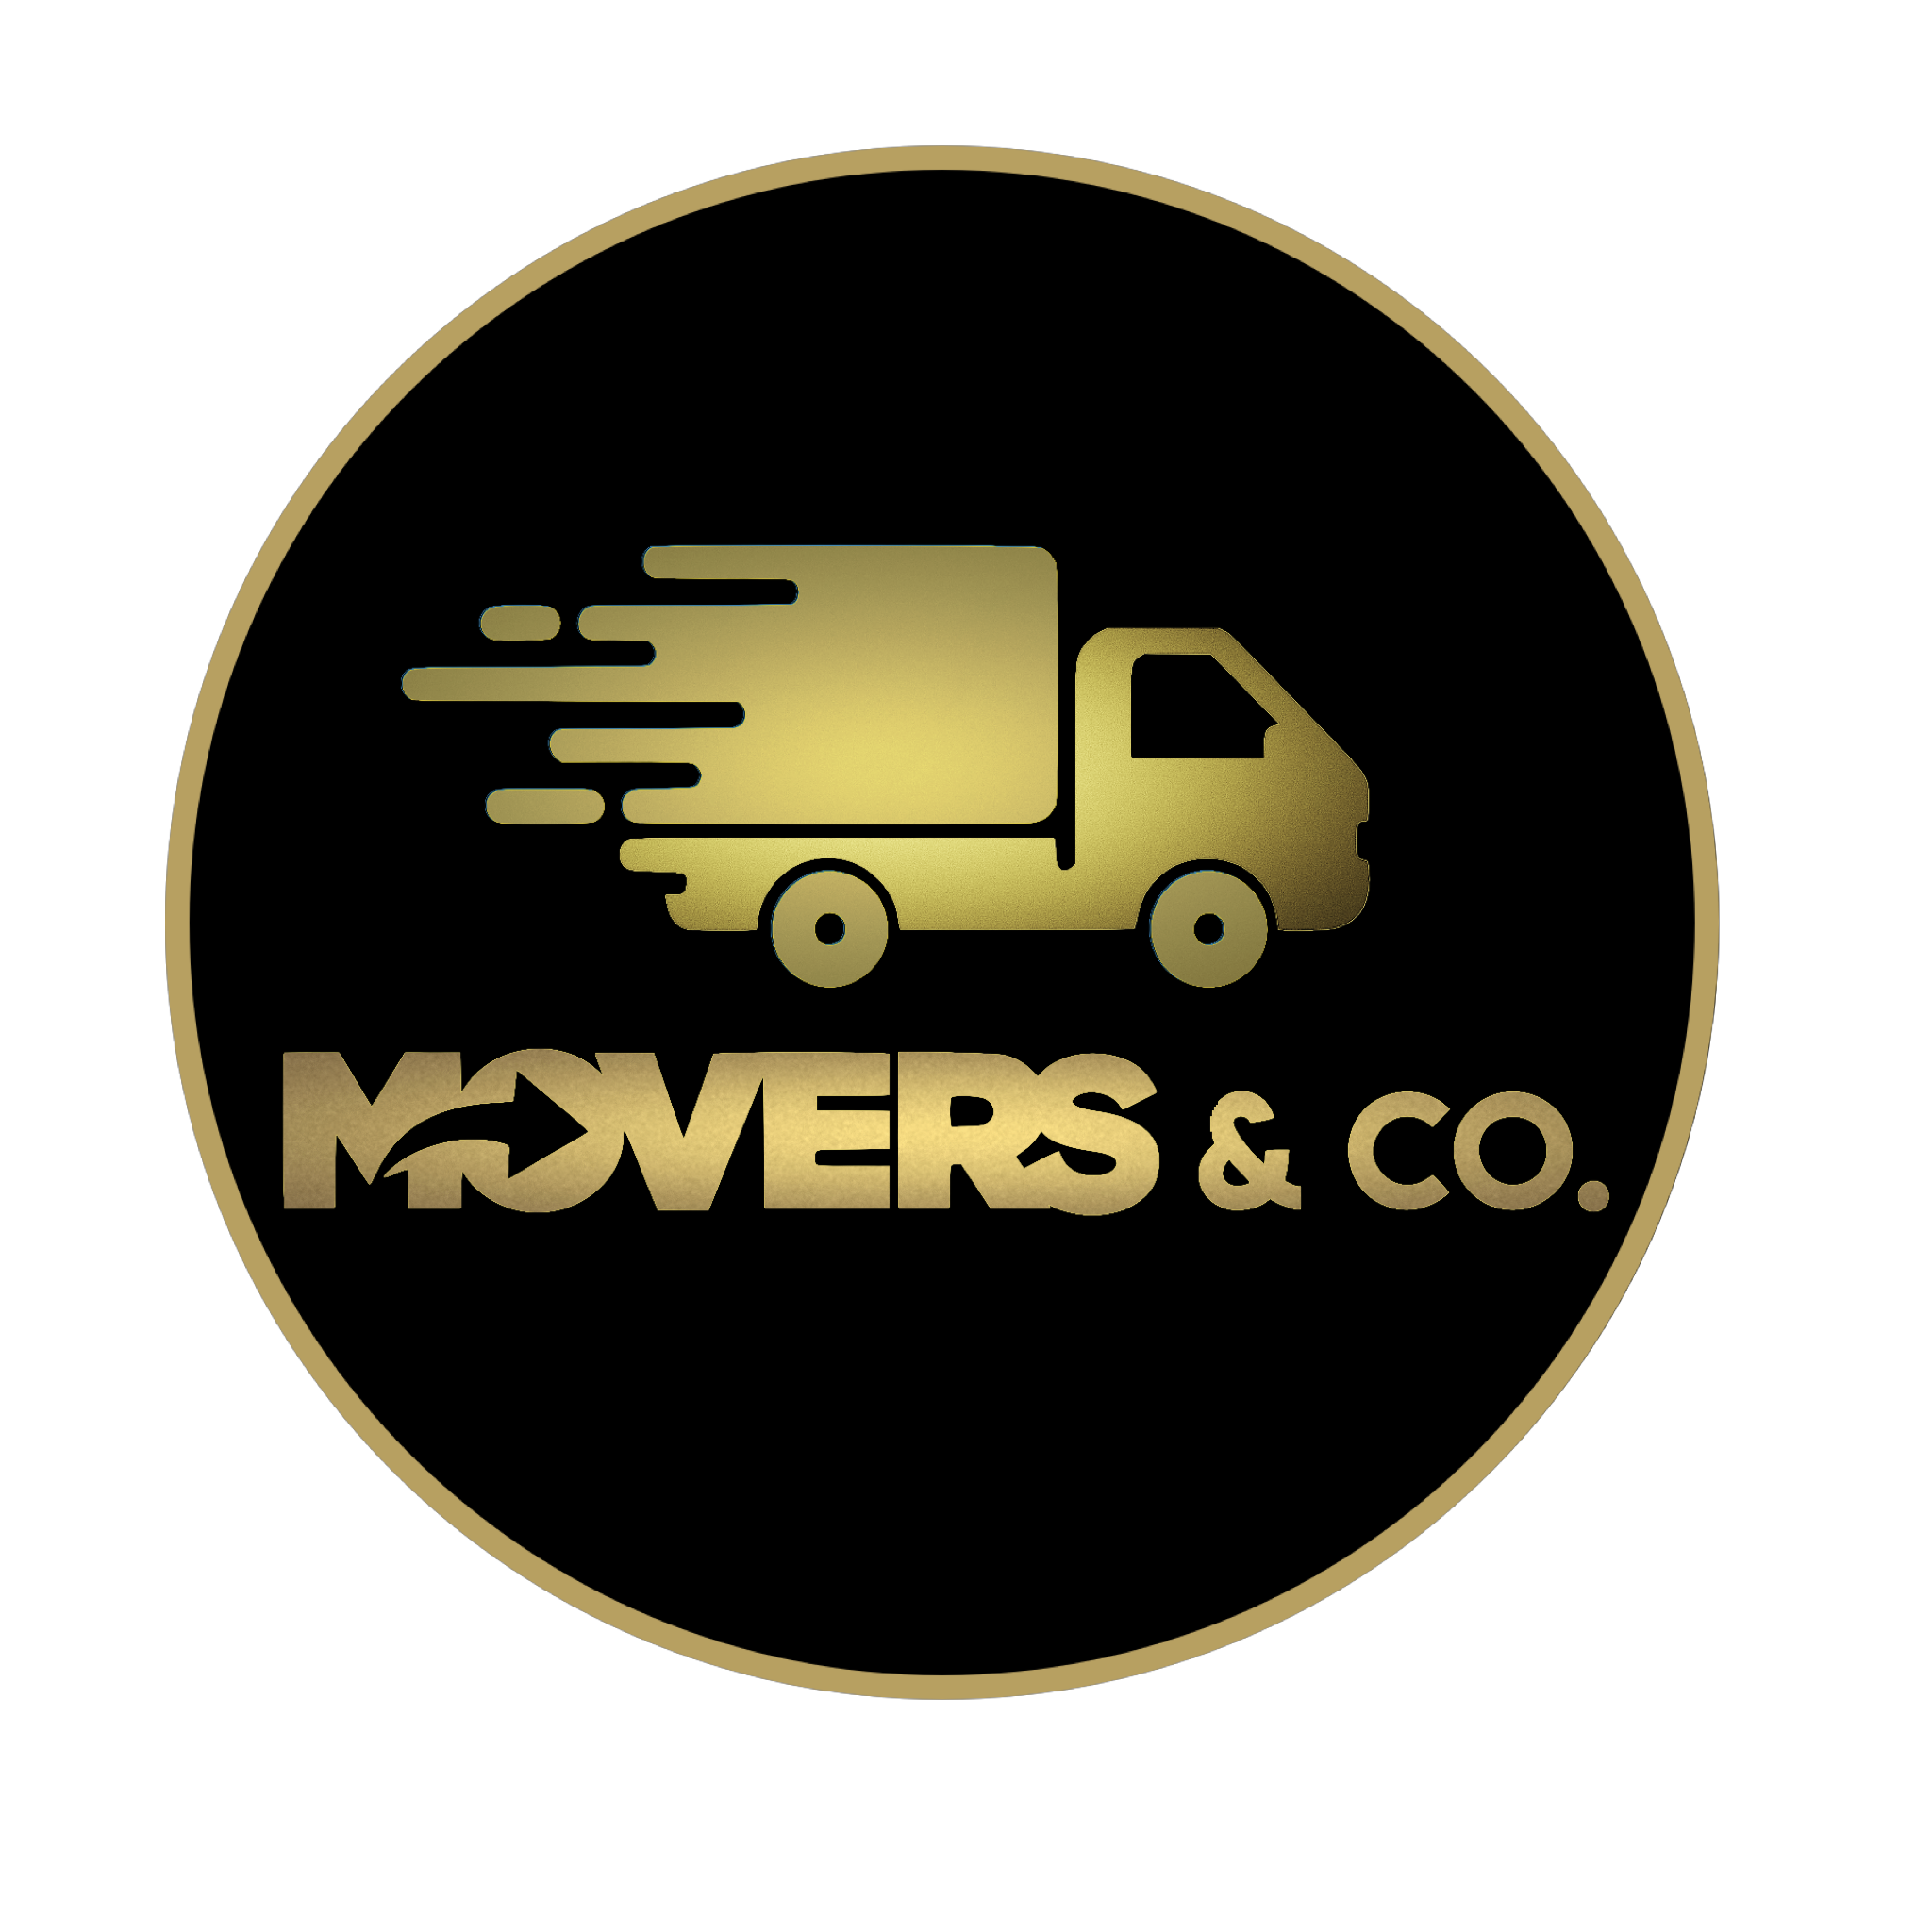 Movers and Co